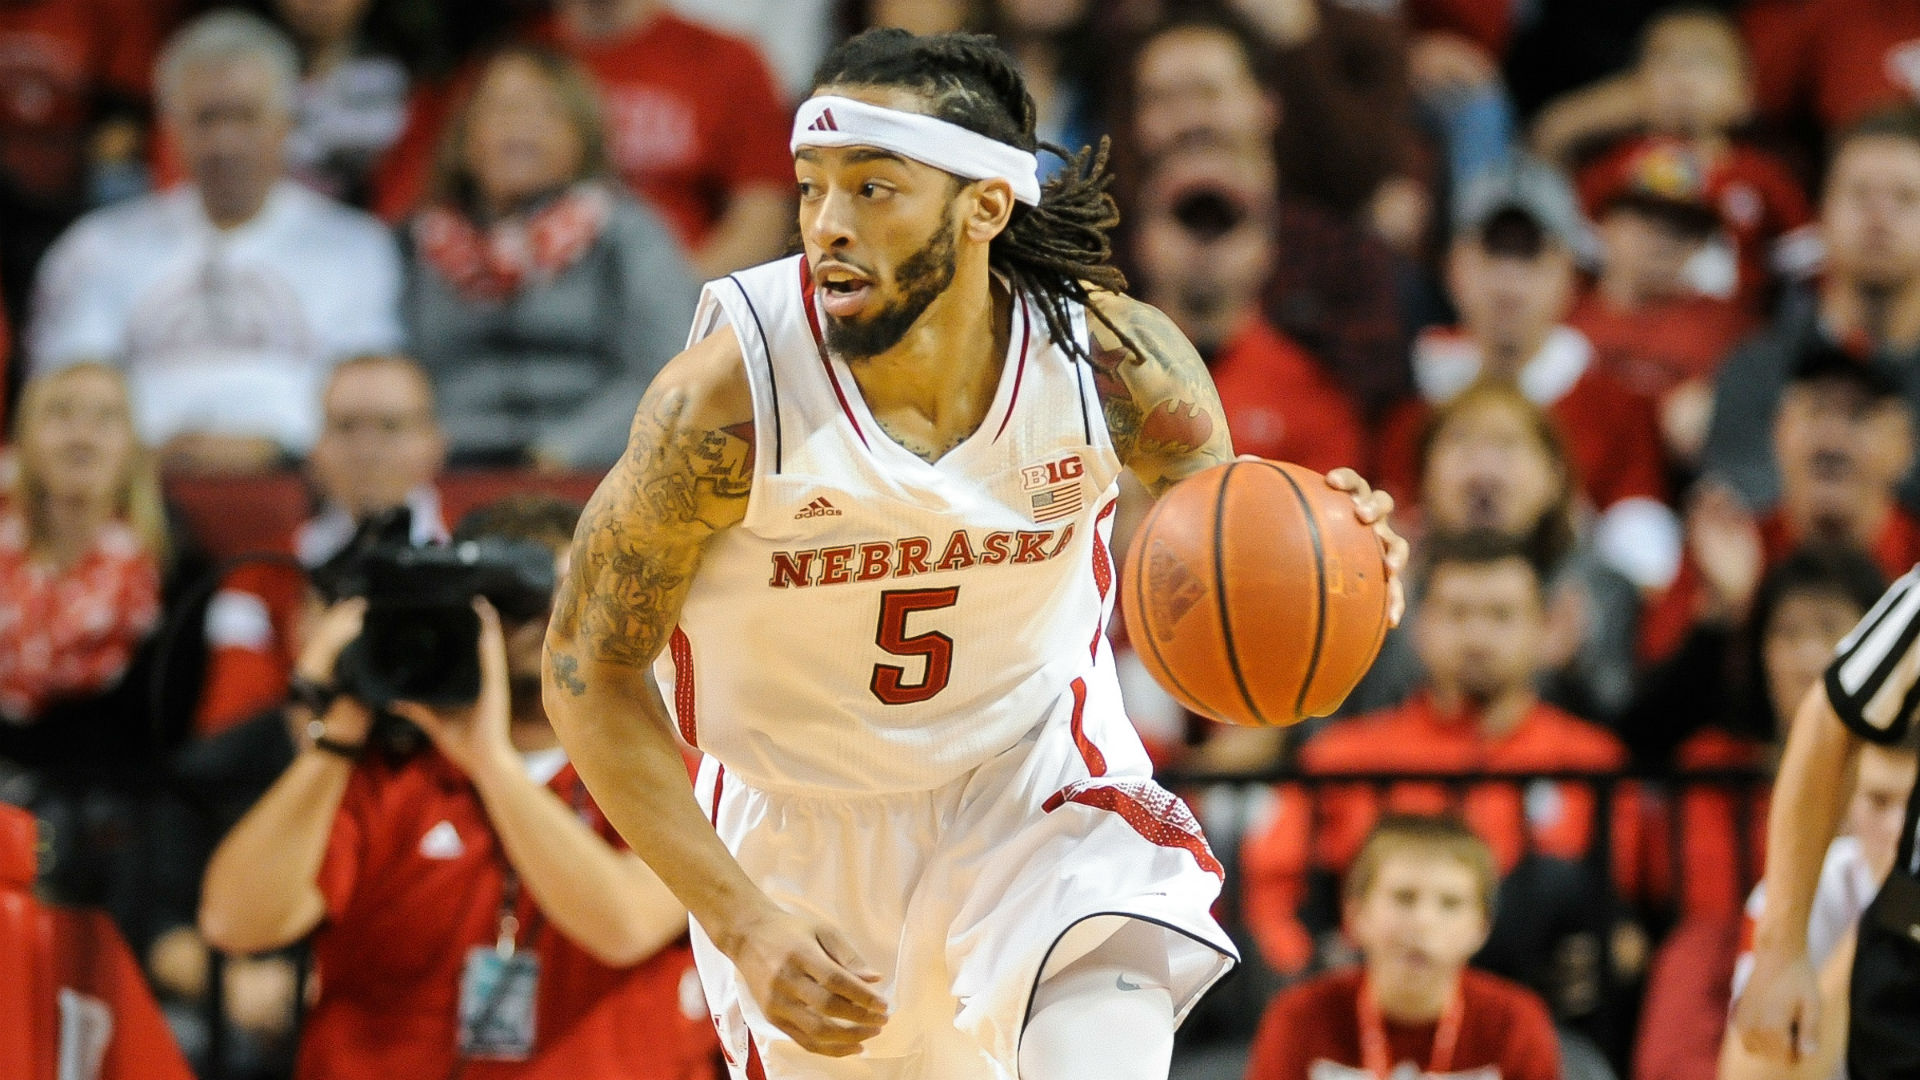 College basketball betting preview - Michigan hosts Nebraska in Big Ten battle